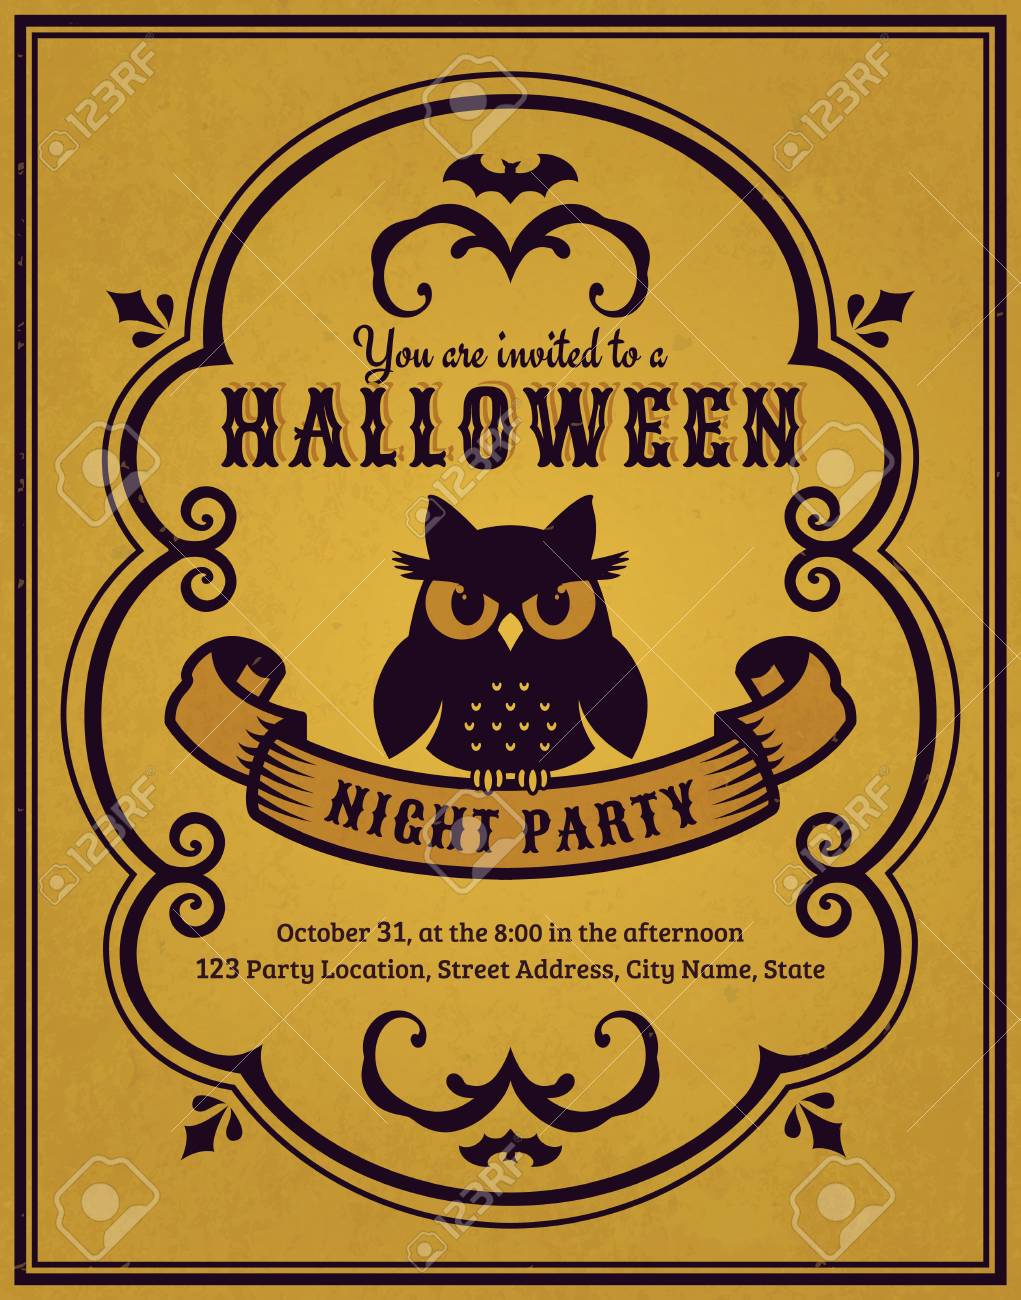 Invitation To Halloween Night Party. Vintage Card With Gloomy ...